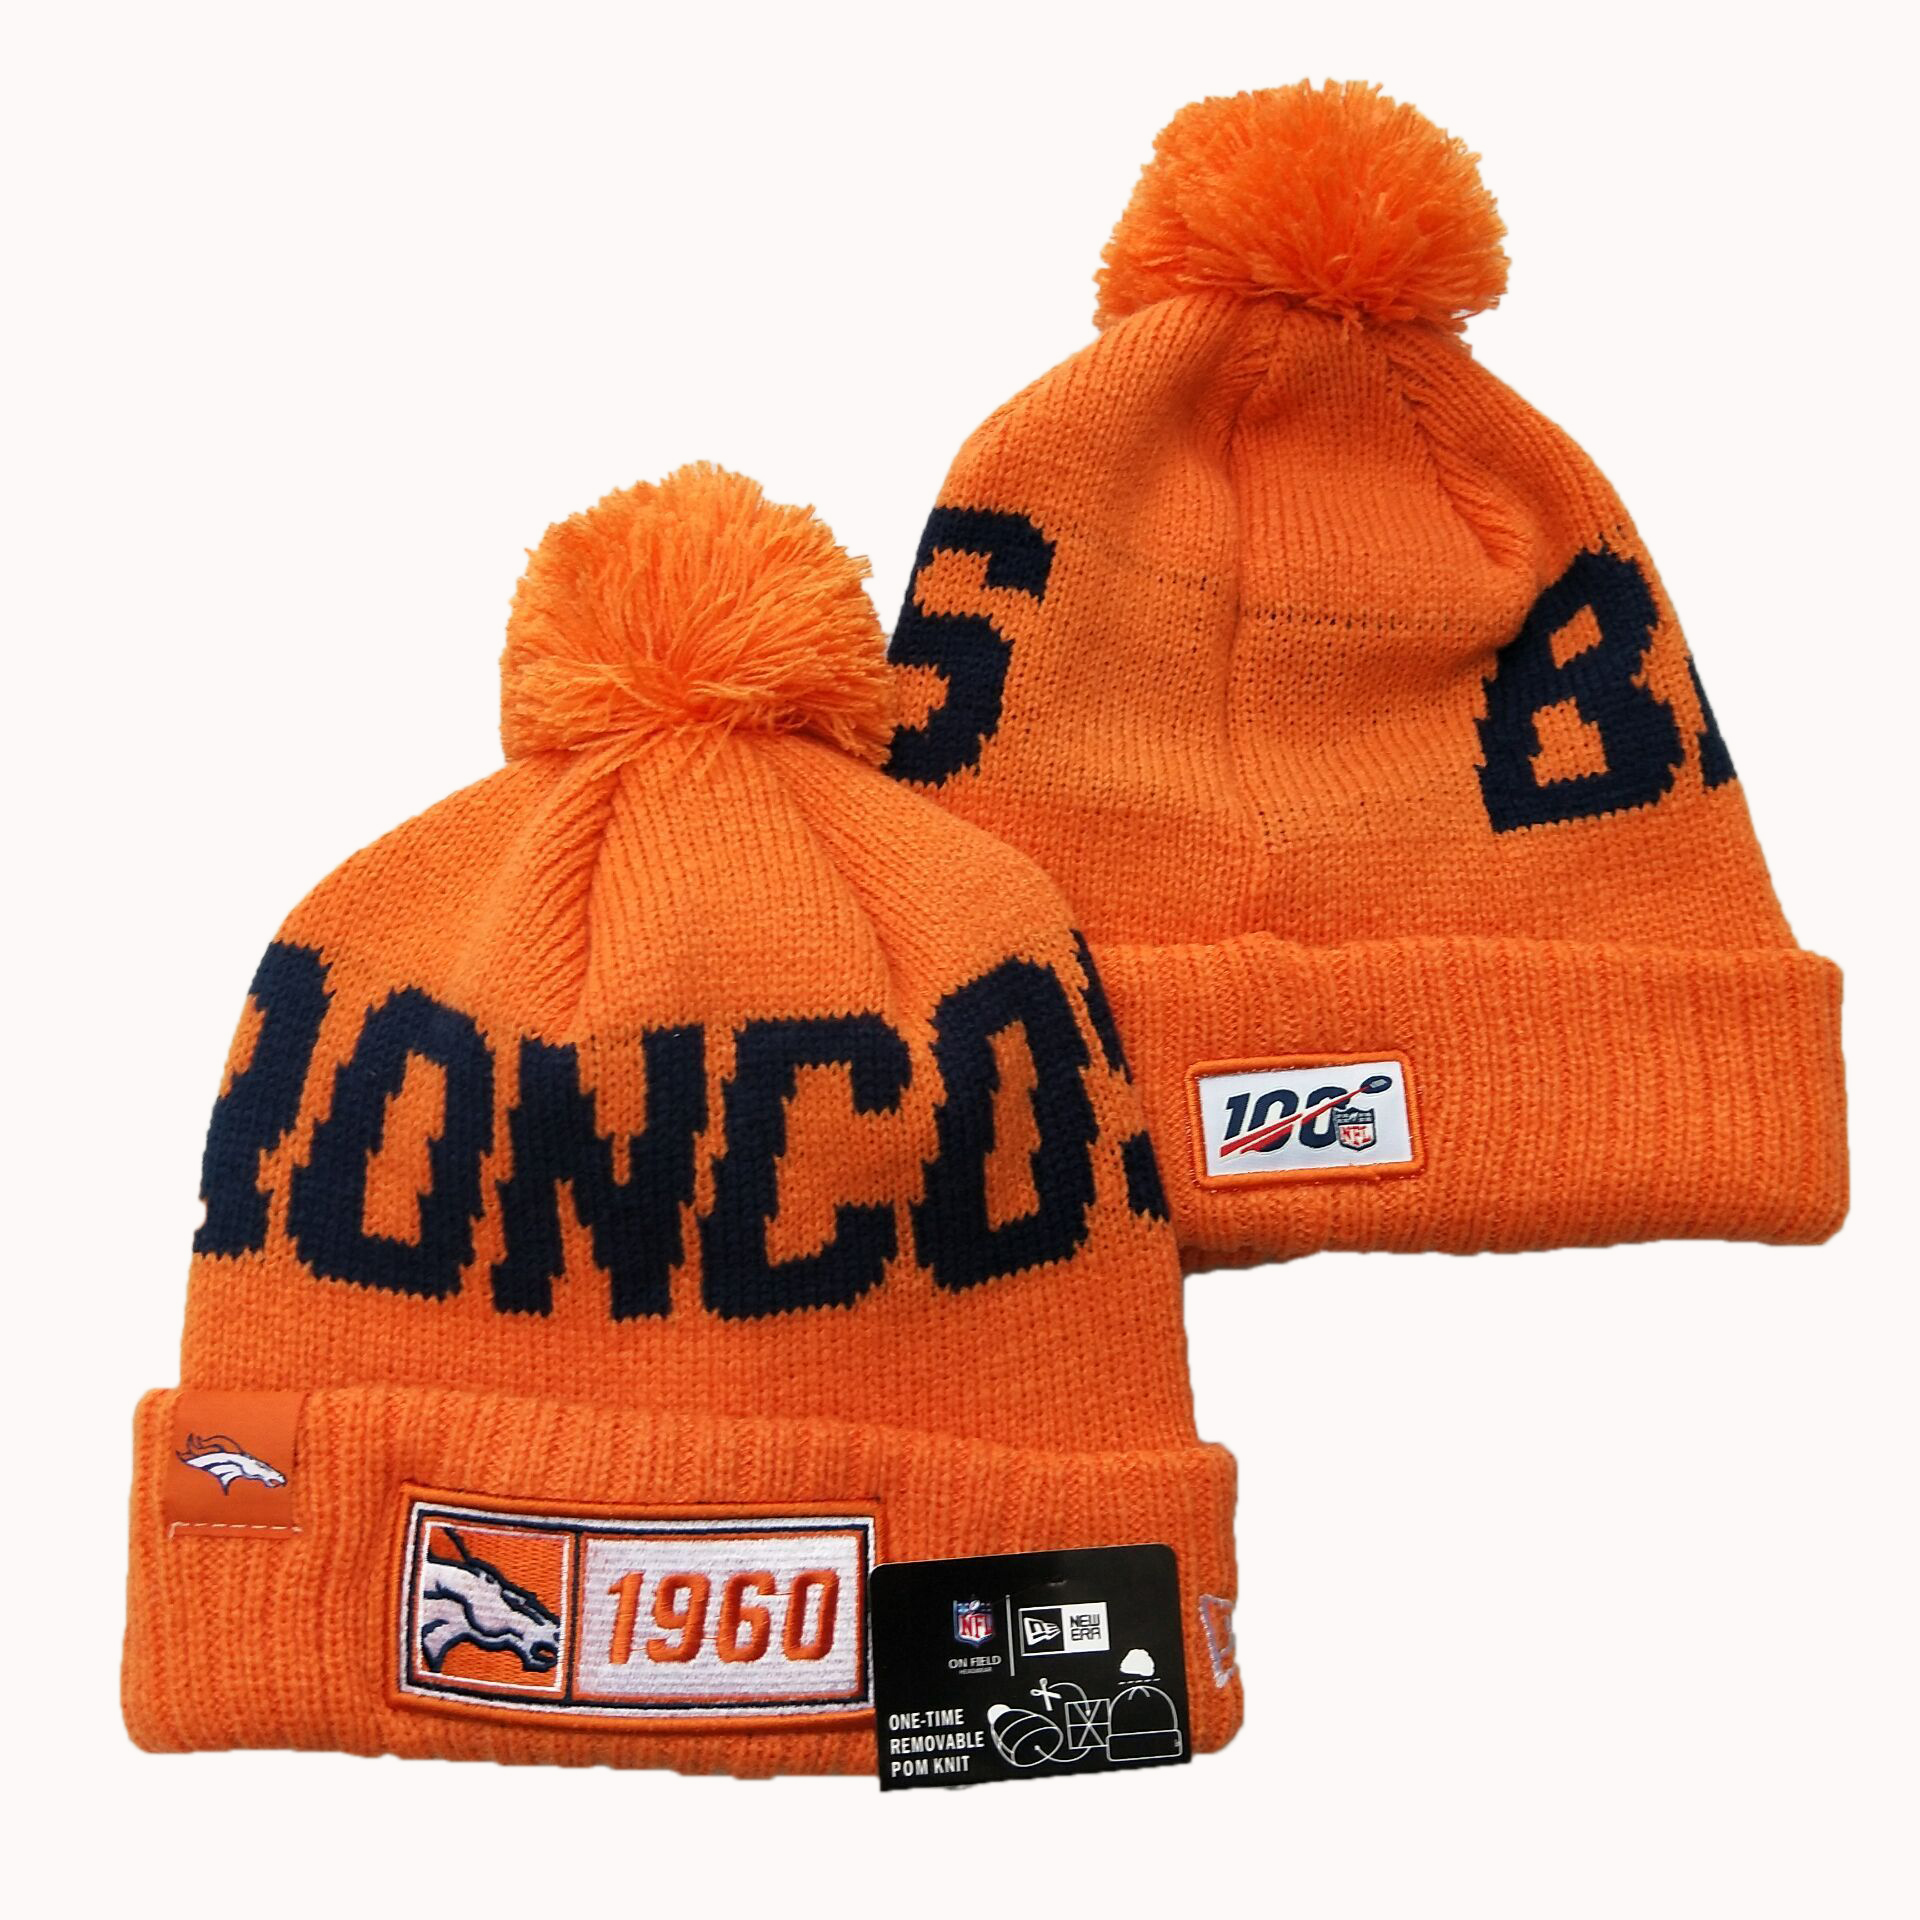 NFL Denver Broncos New Era 2019 Sideline Road Reverse Sport Knit Hats 012